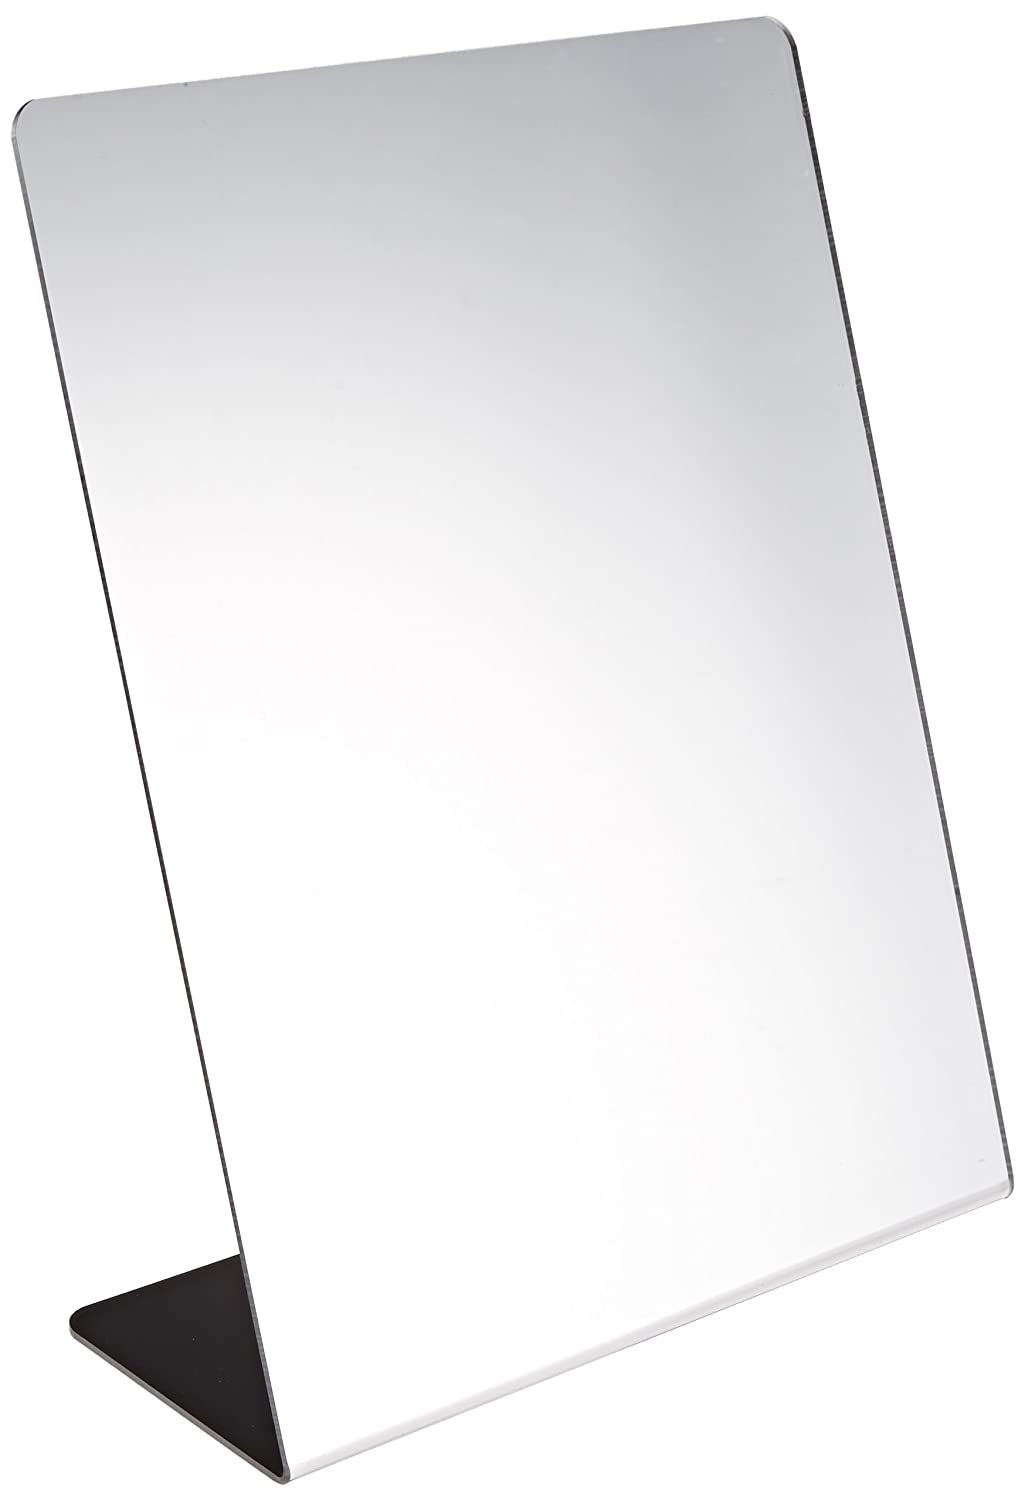 Sax Free-Standing and Single-Sided Self-Portrait Mirror - 8 1/2 x 11 inches